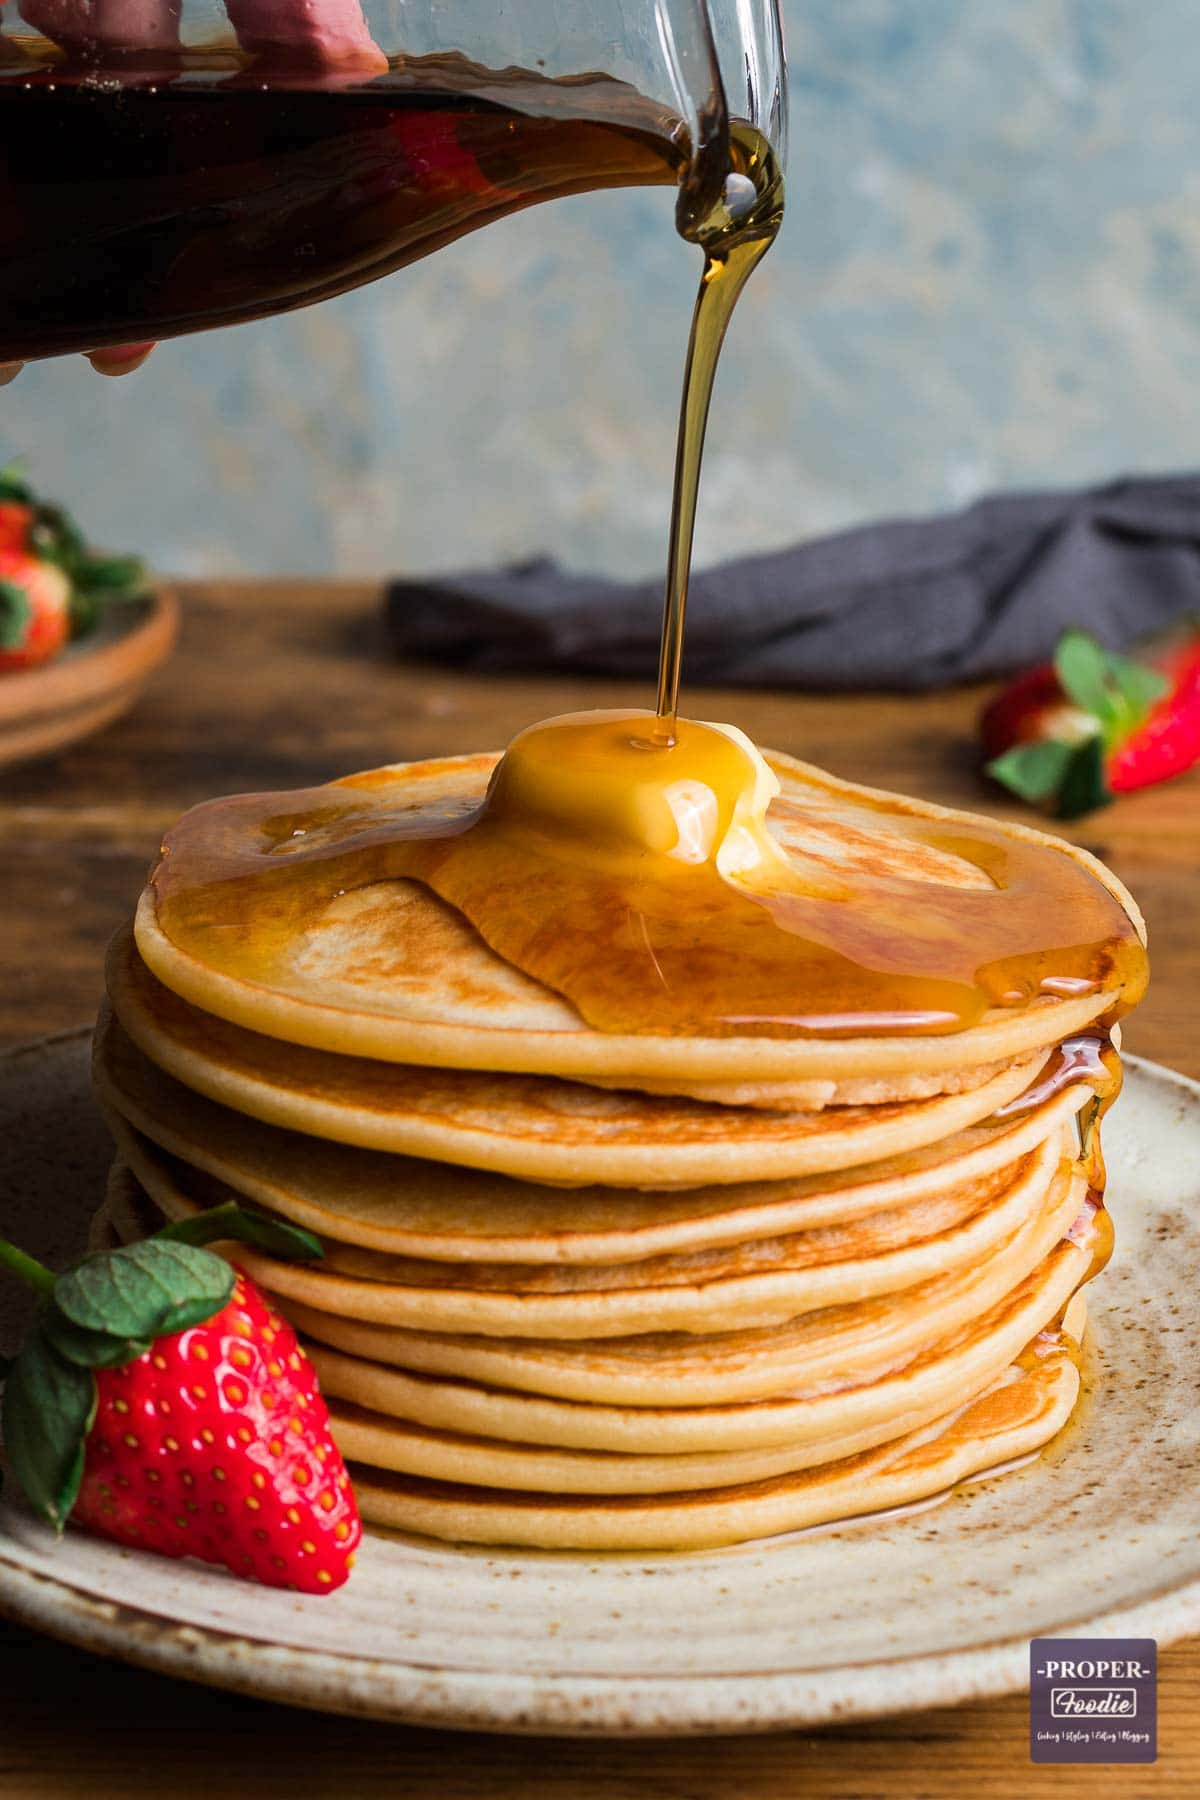 A stack of pancakes with a piece of butter melting on the top and syrup poured over and drizzling down one side.